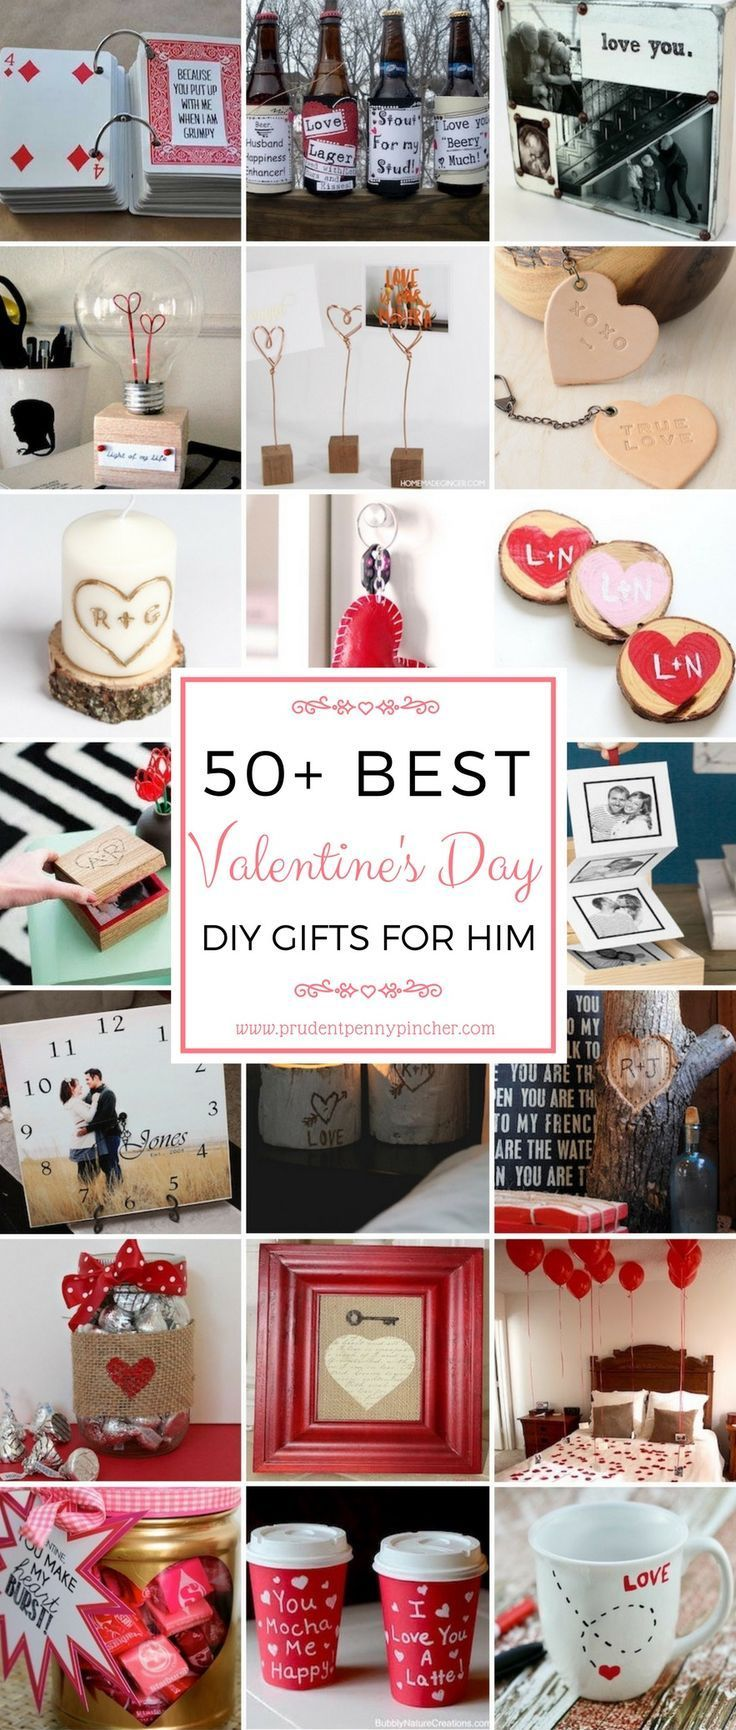 Outstanding Valentines Day Ideas For Him At Home Pictures - Home ...